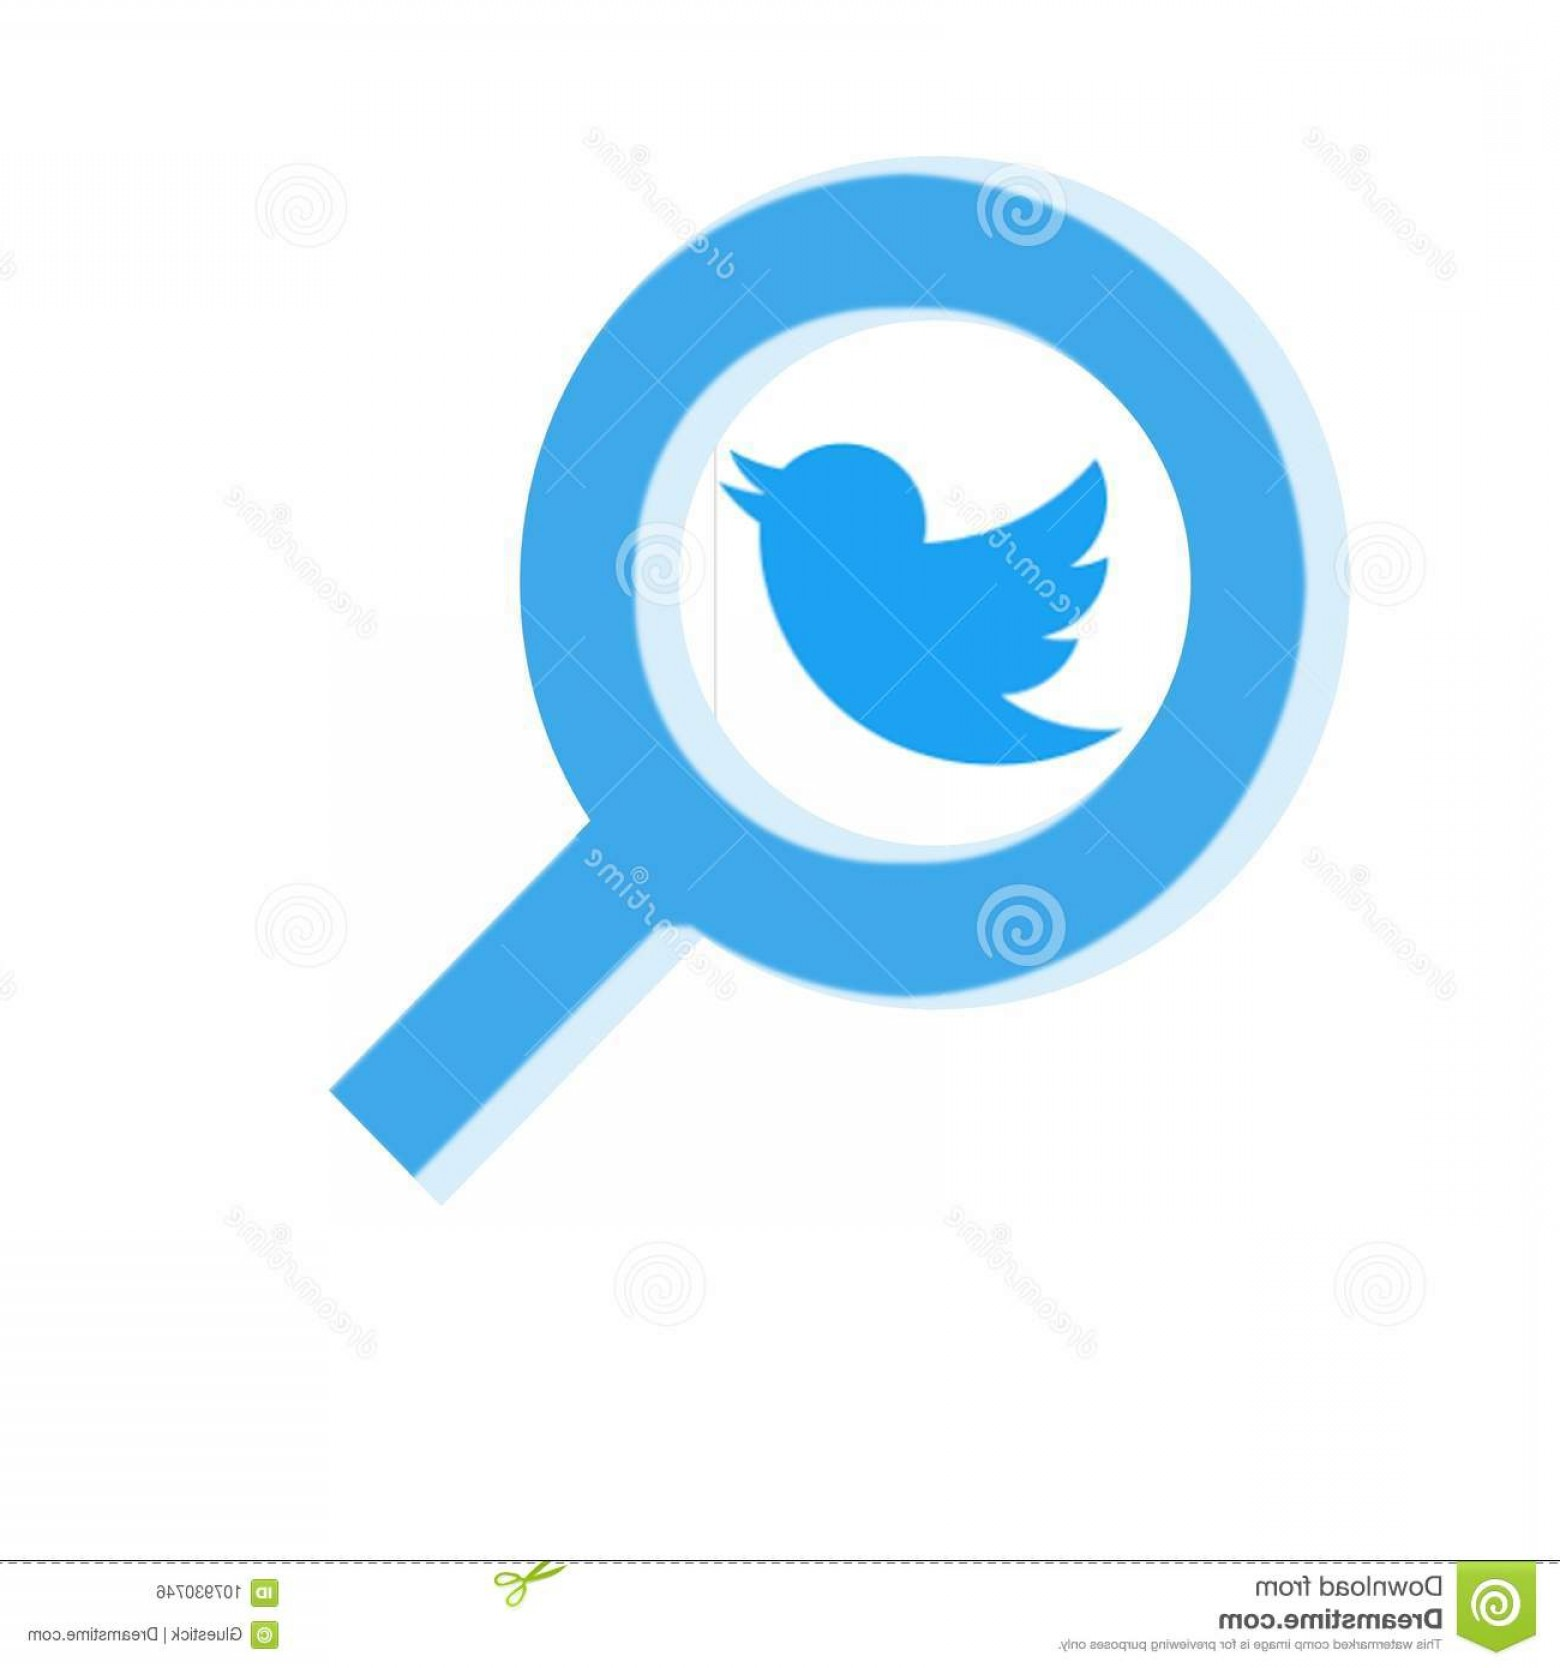 MeeGo Logo Vector: Blue Magnifying Glass Over Twitter Logo Illustration Vector Your Creative Needs Ideas Image